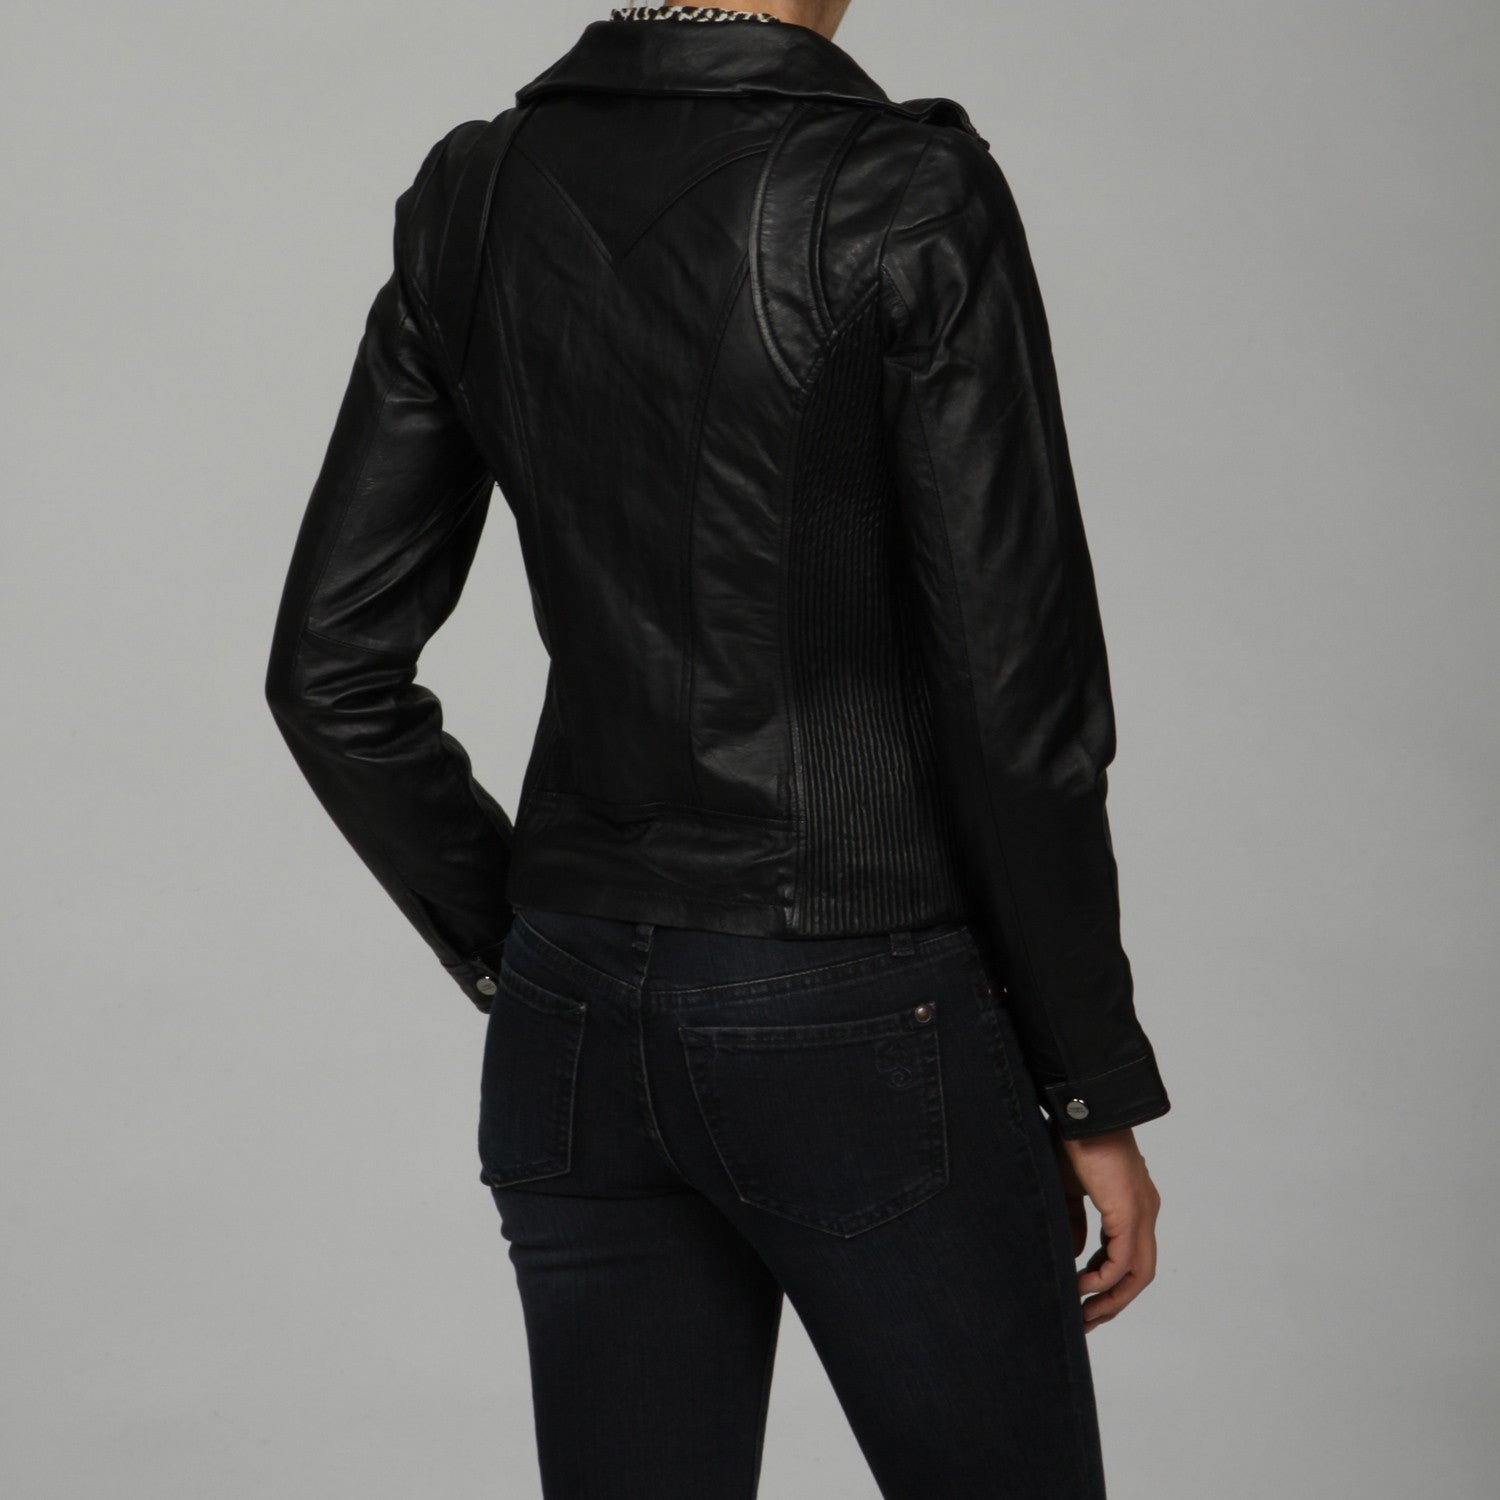 professional sale popular style professional design Steve Madden Women's black Leather Jacket